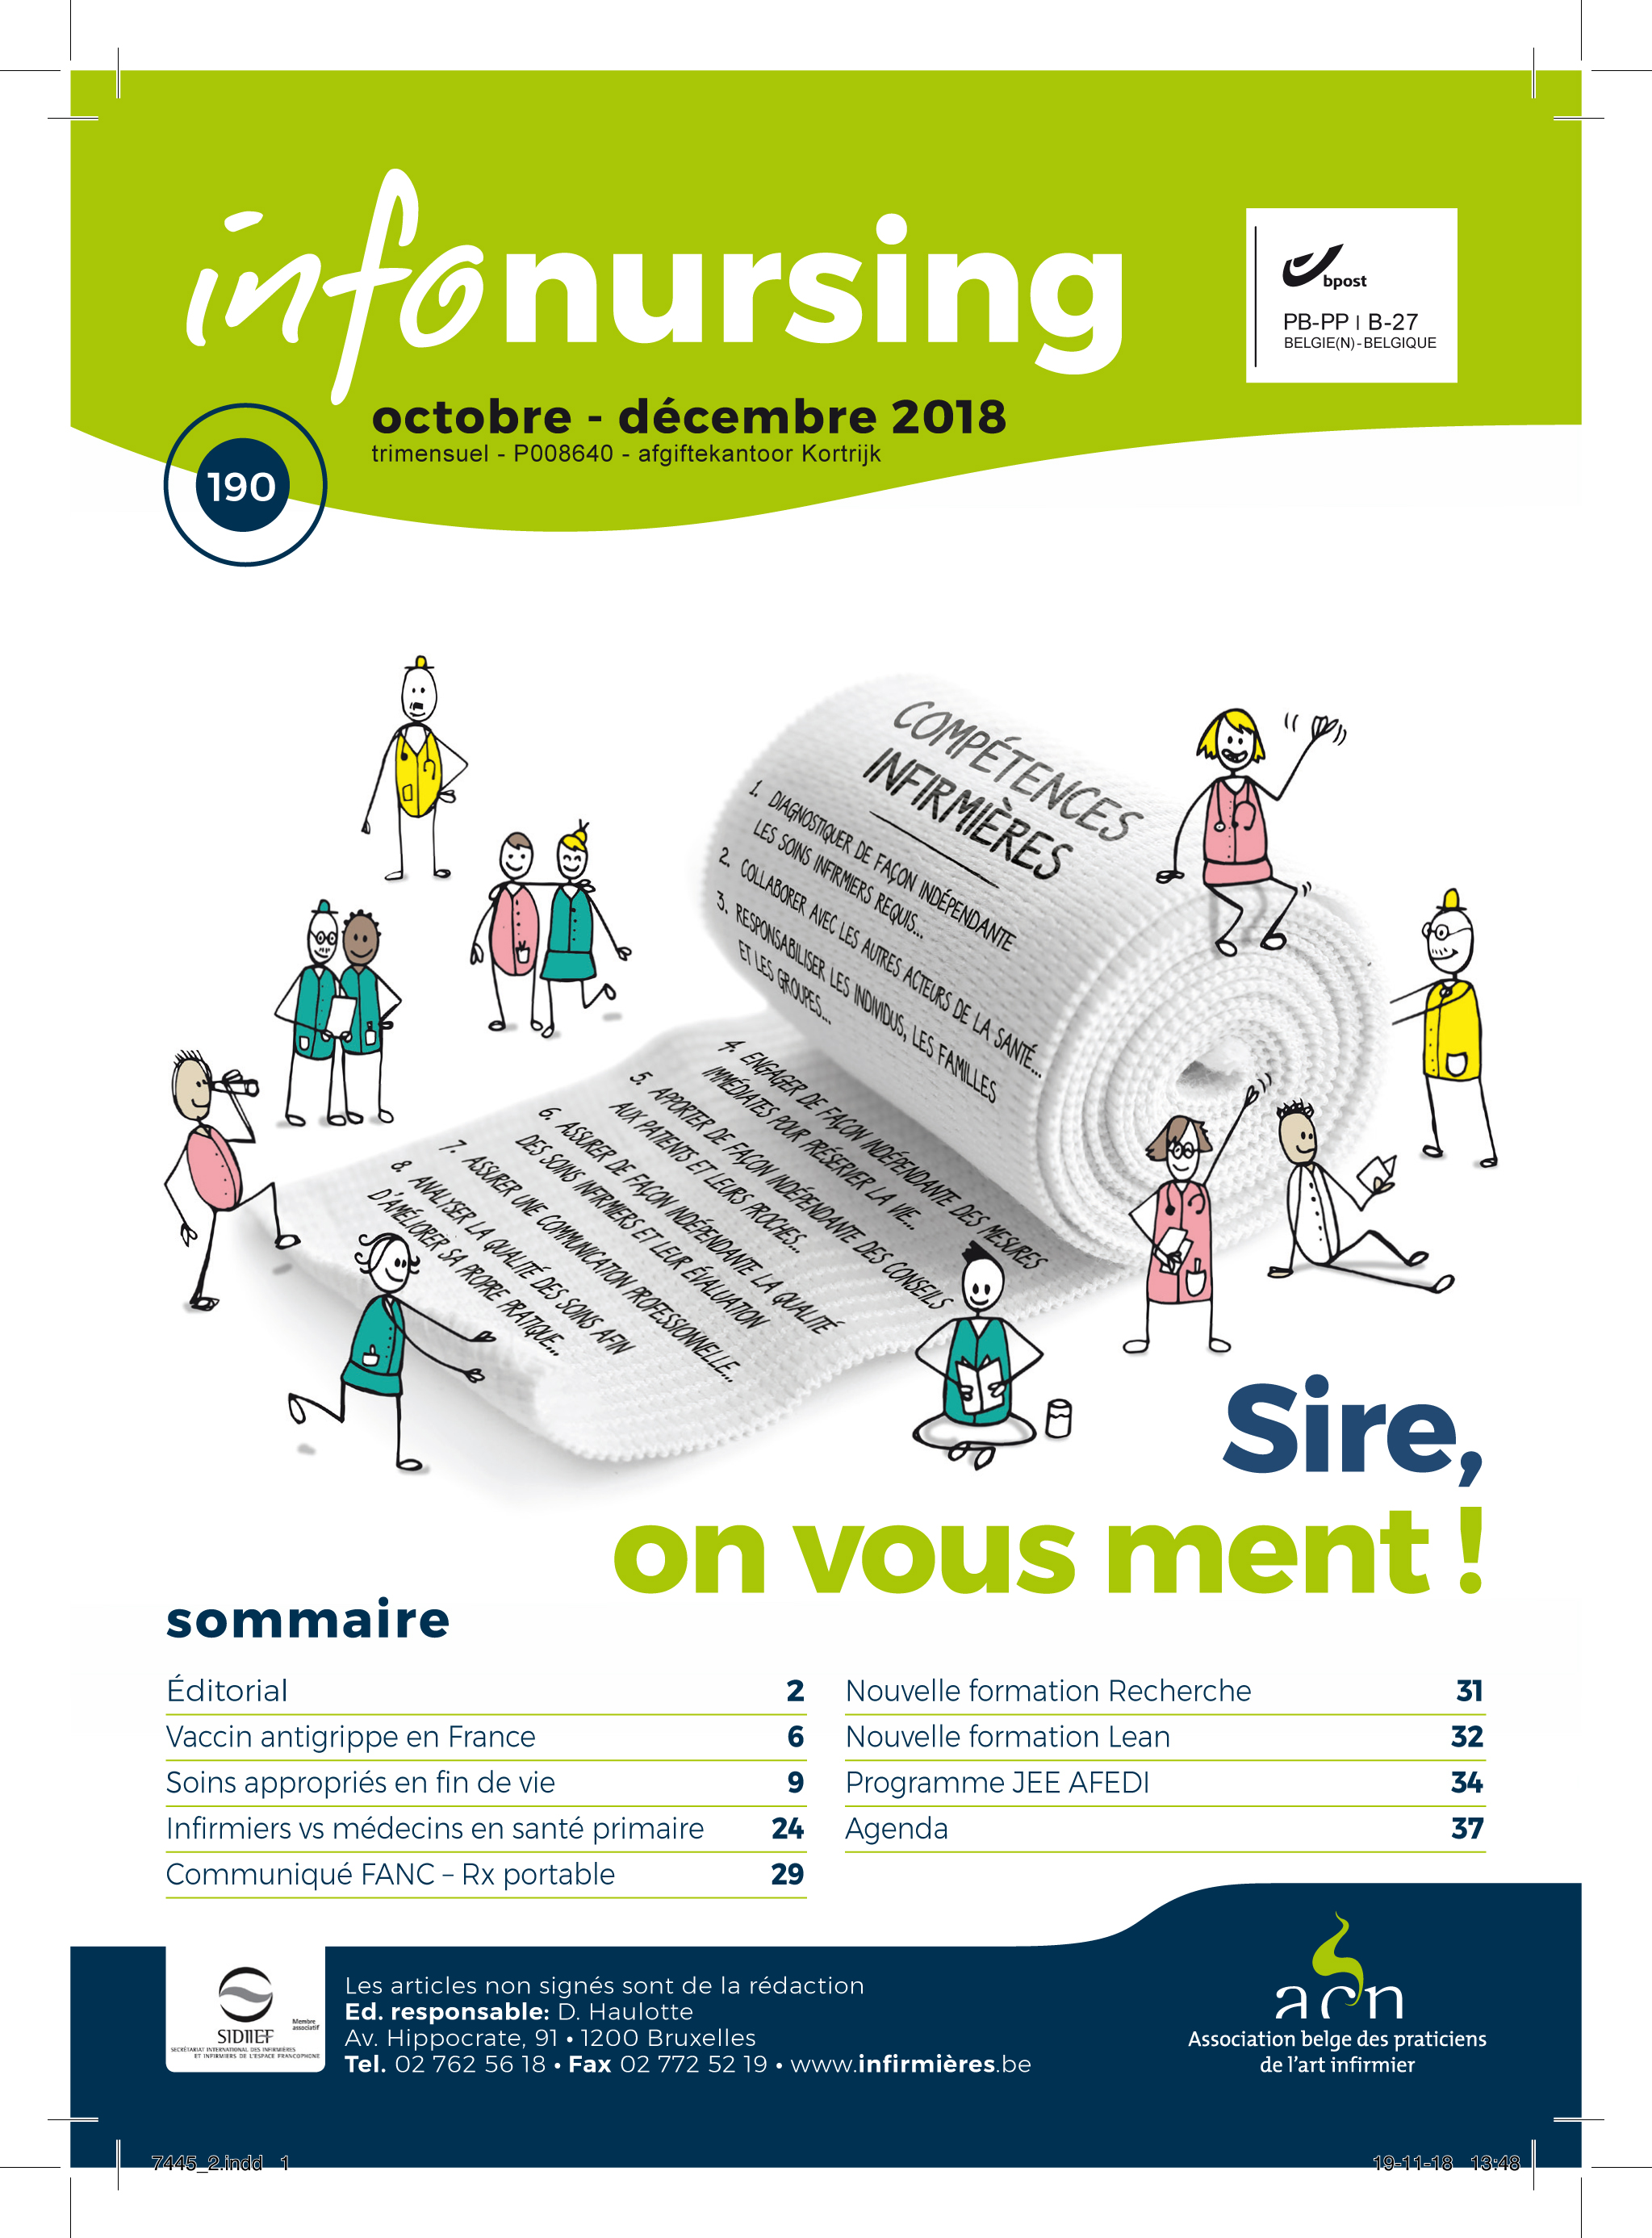 Edito Info-Nursing 190 : Sire on vous ment !